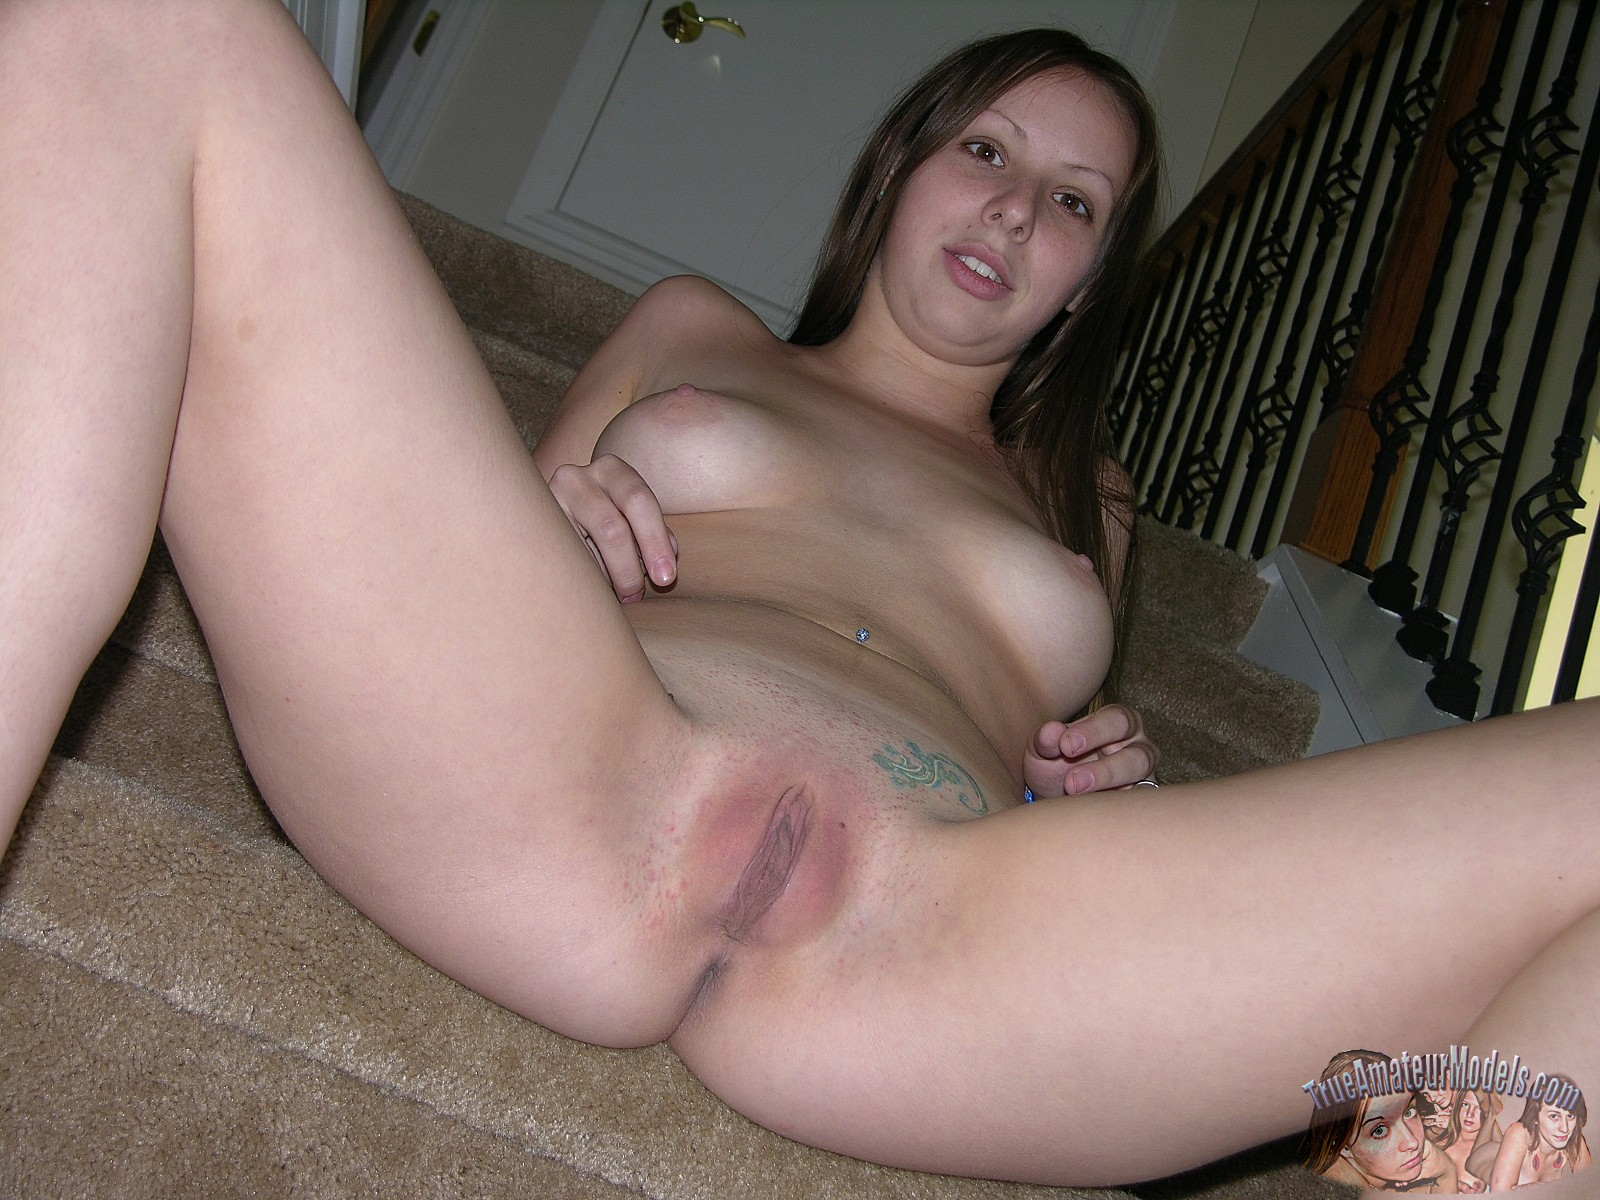 spread Amateur blonde eagle pussy girl